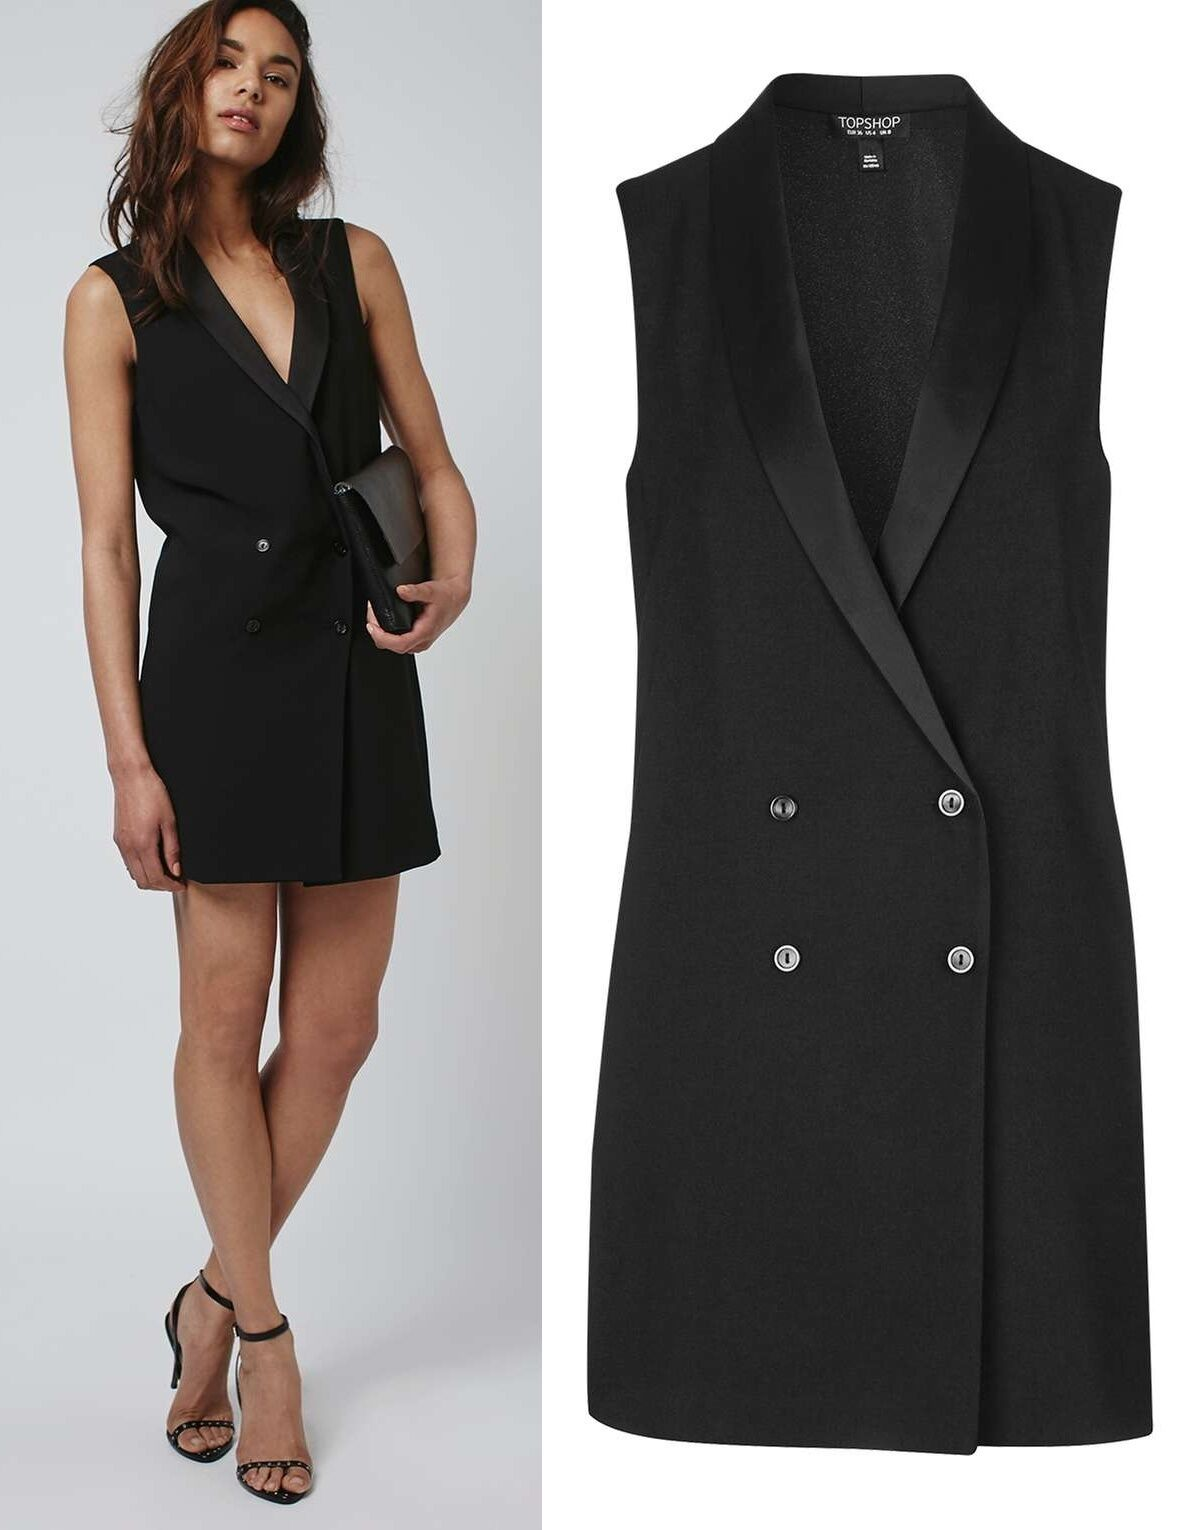 4c7a6c694b1e92 Details about TOPSHOP Black Longline Sleeveless Jacket Blazer Size 6 to 16